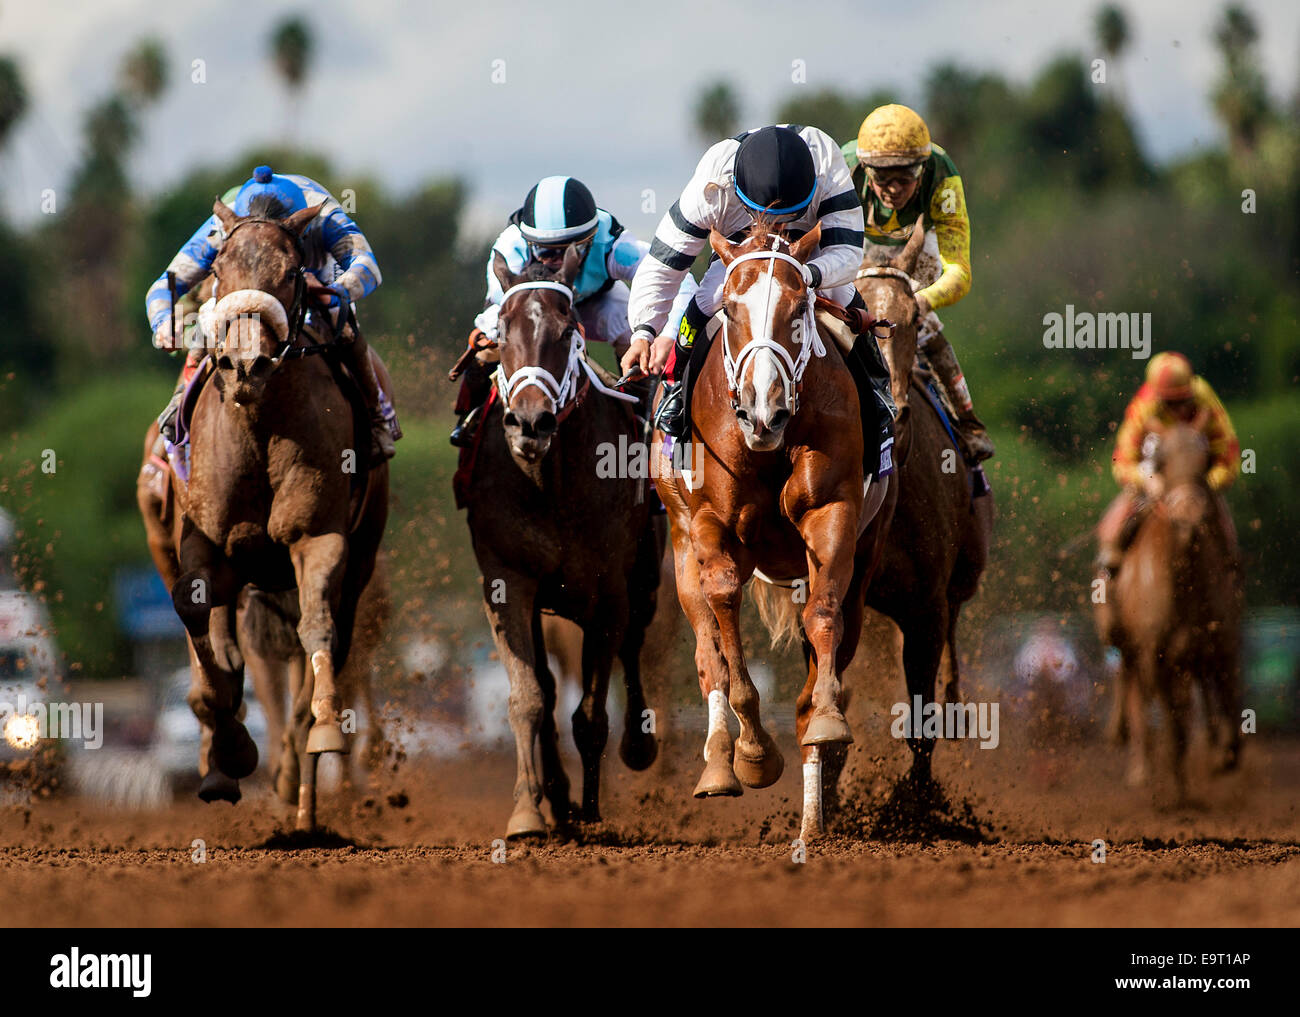 Arcadia, CA, USA. 2nd Nov, 2014. November 01 2014: Take Charge Brandi, ridden by Victor Espinoza and trained by Stock Photo